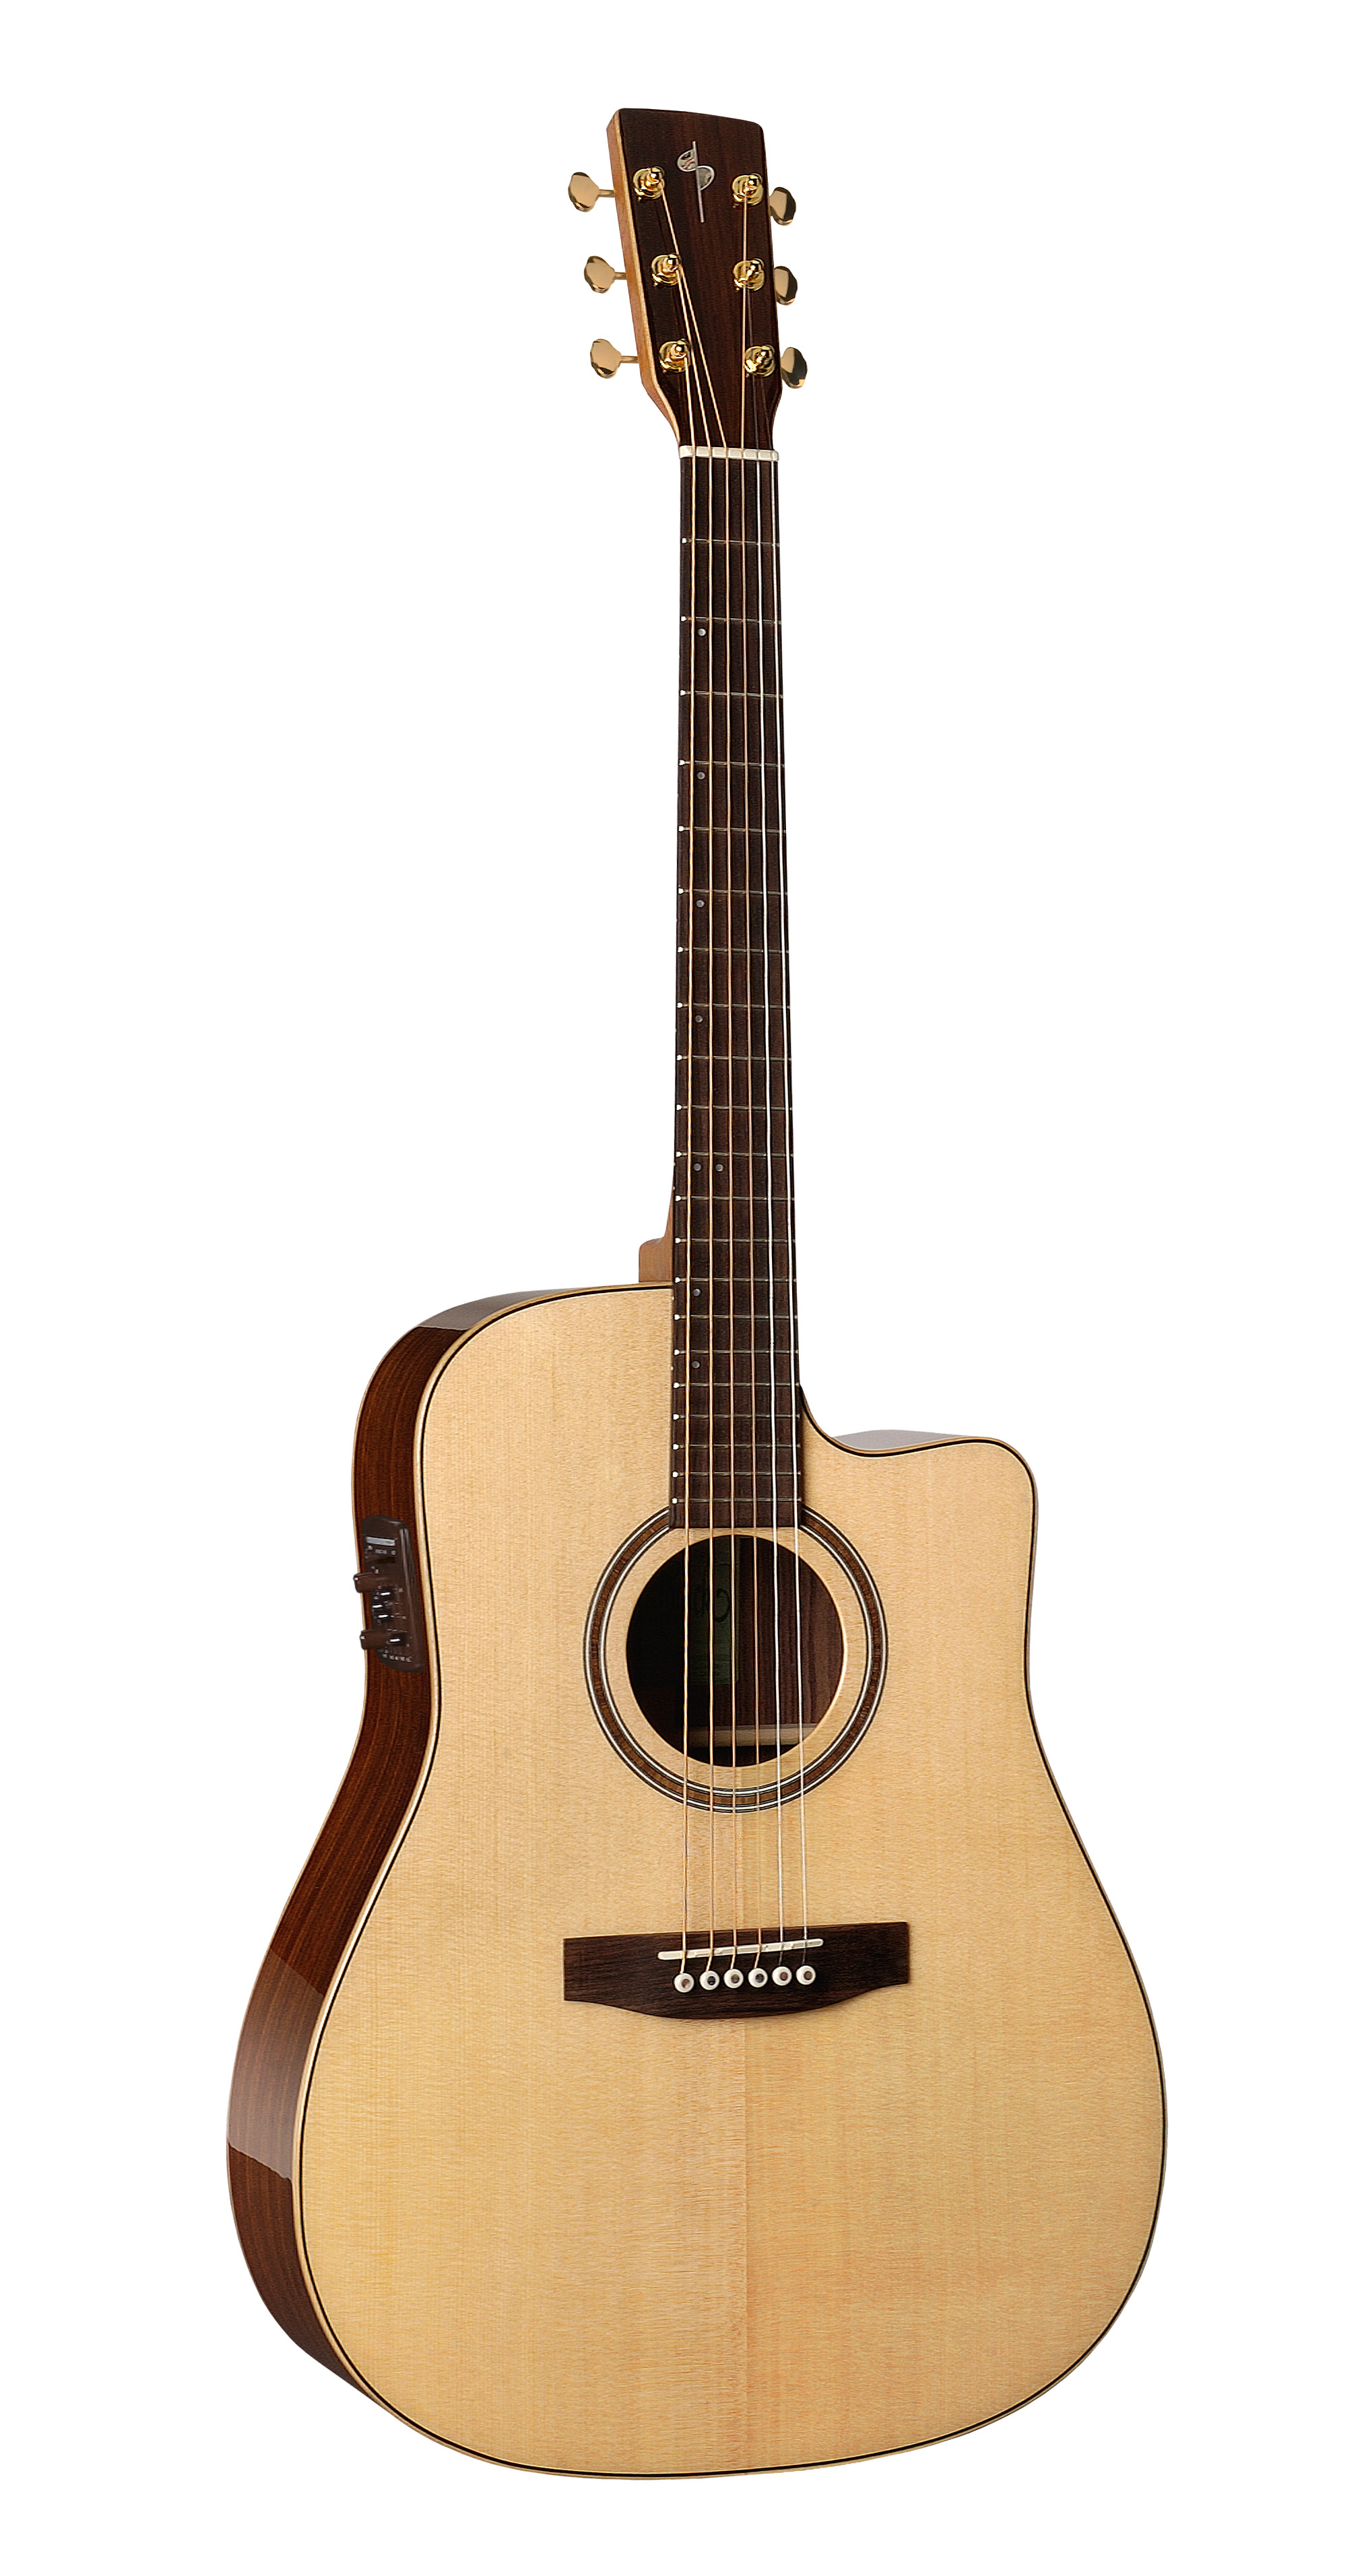 Simon & Patrick 33300 Showcase Cutaway Rosewood Acoustic Electric Guitar w/ B-Band A6T